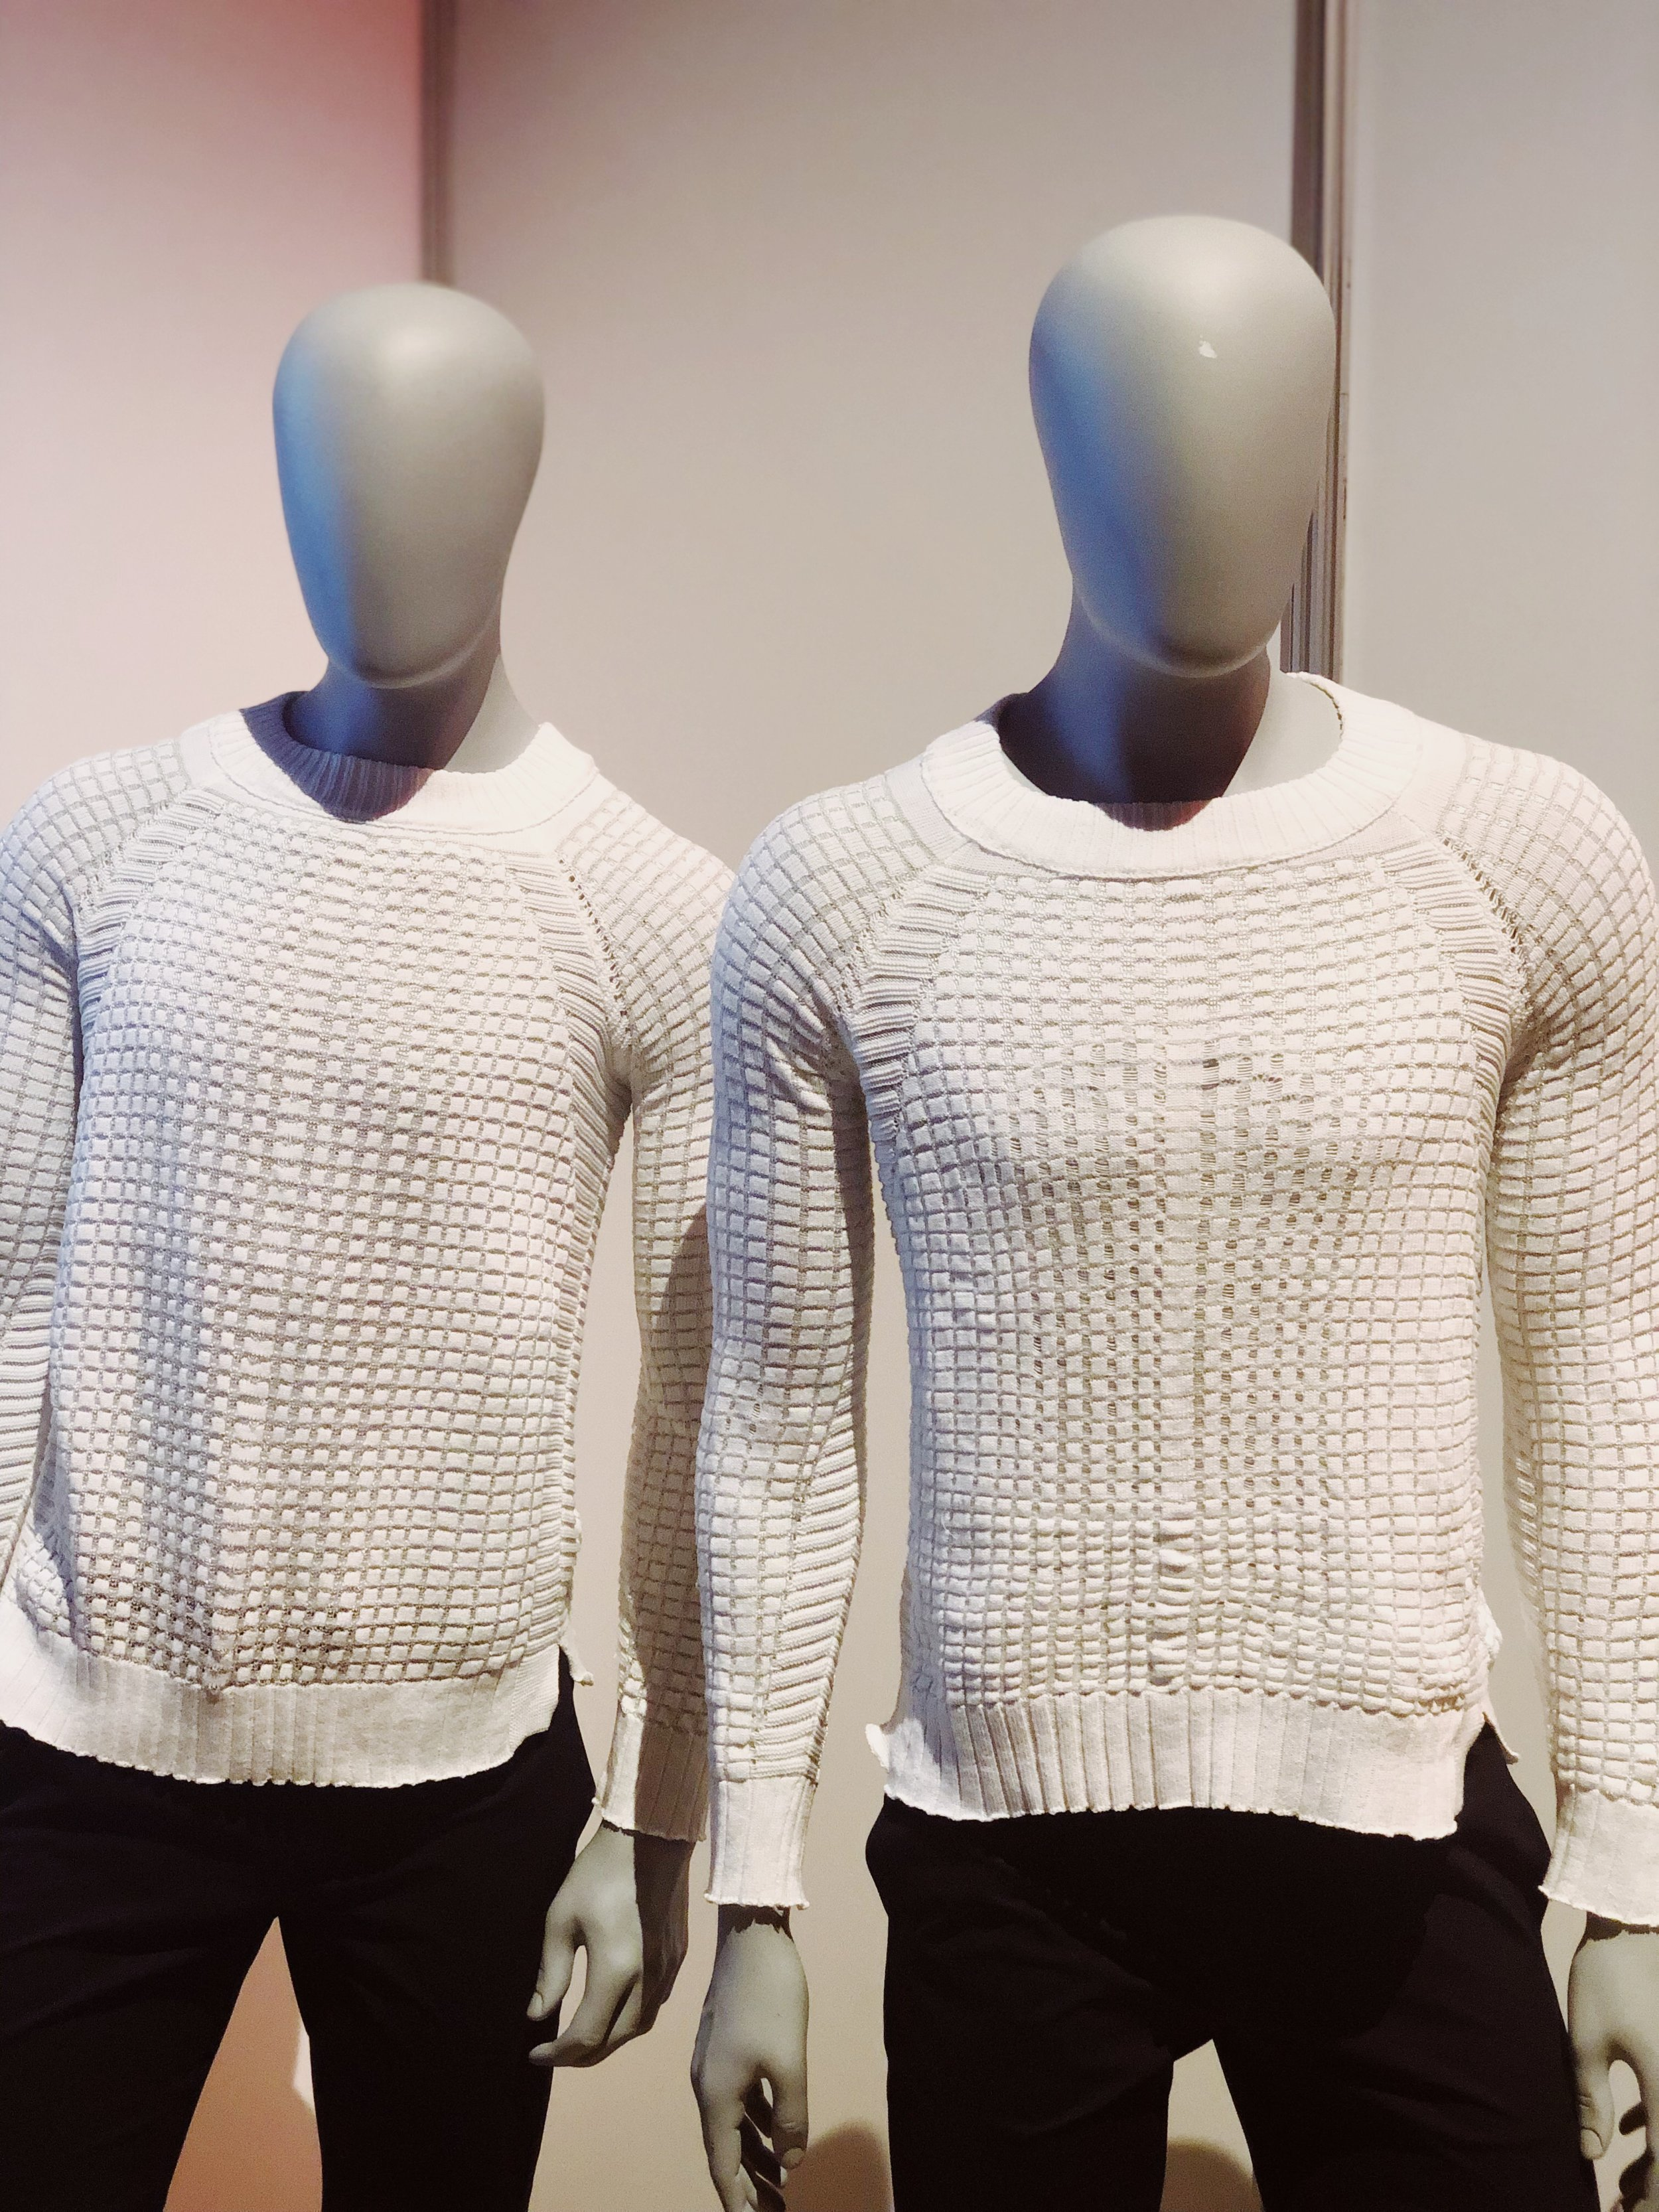 Left: A stock-size garment. Right: The same stock-size garment after Instant Tailoring.